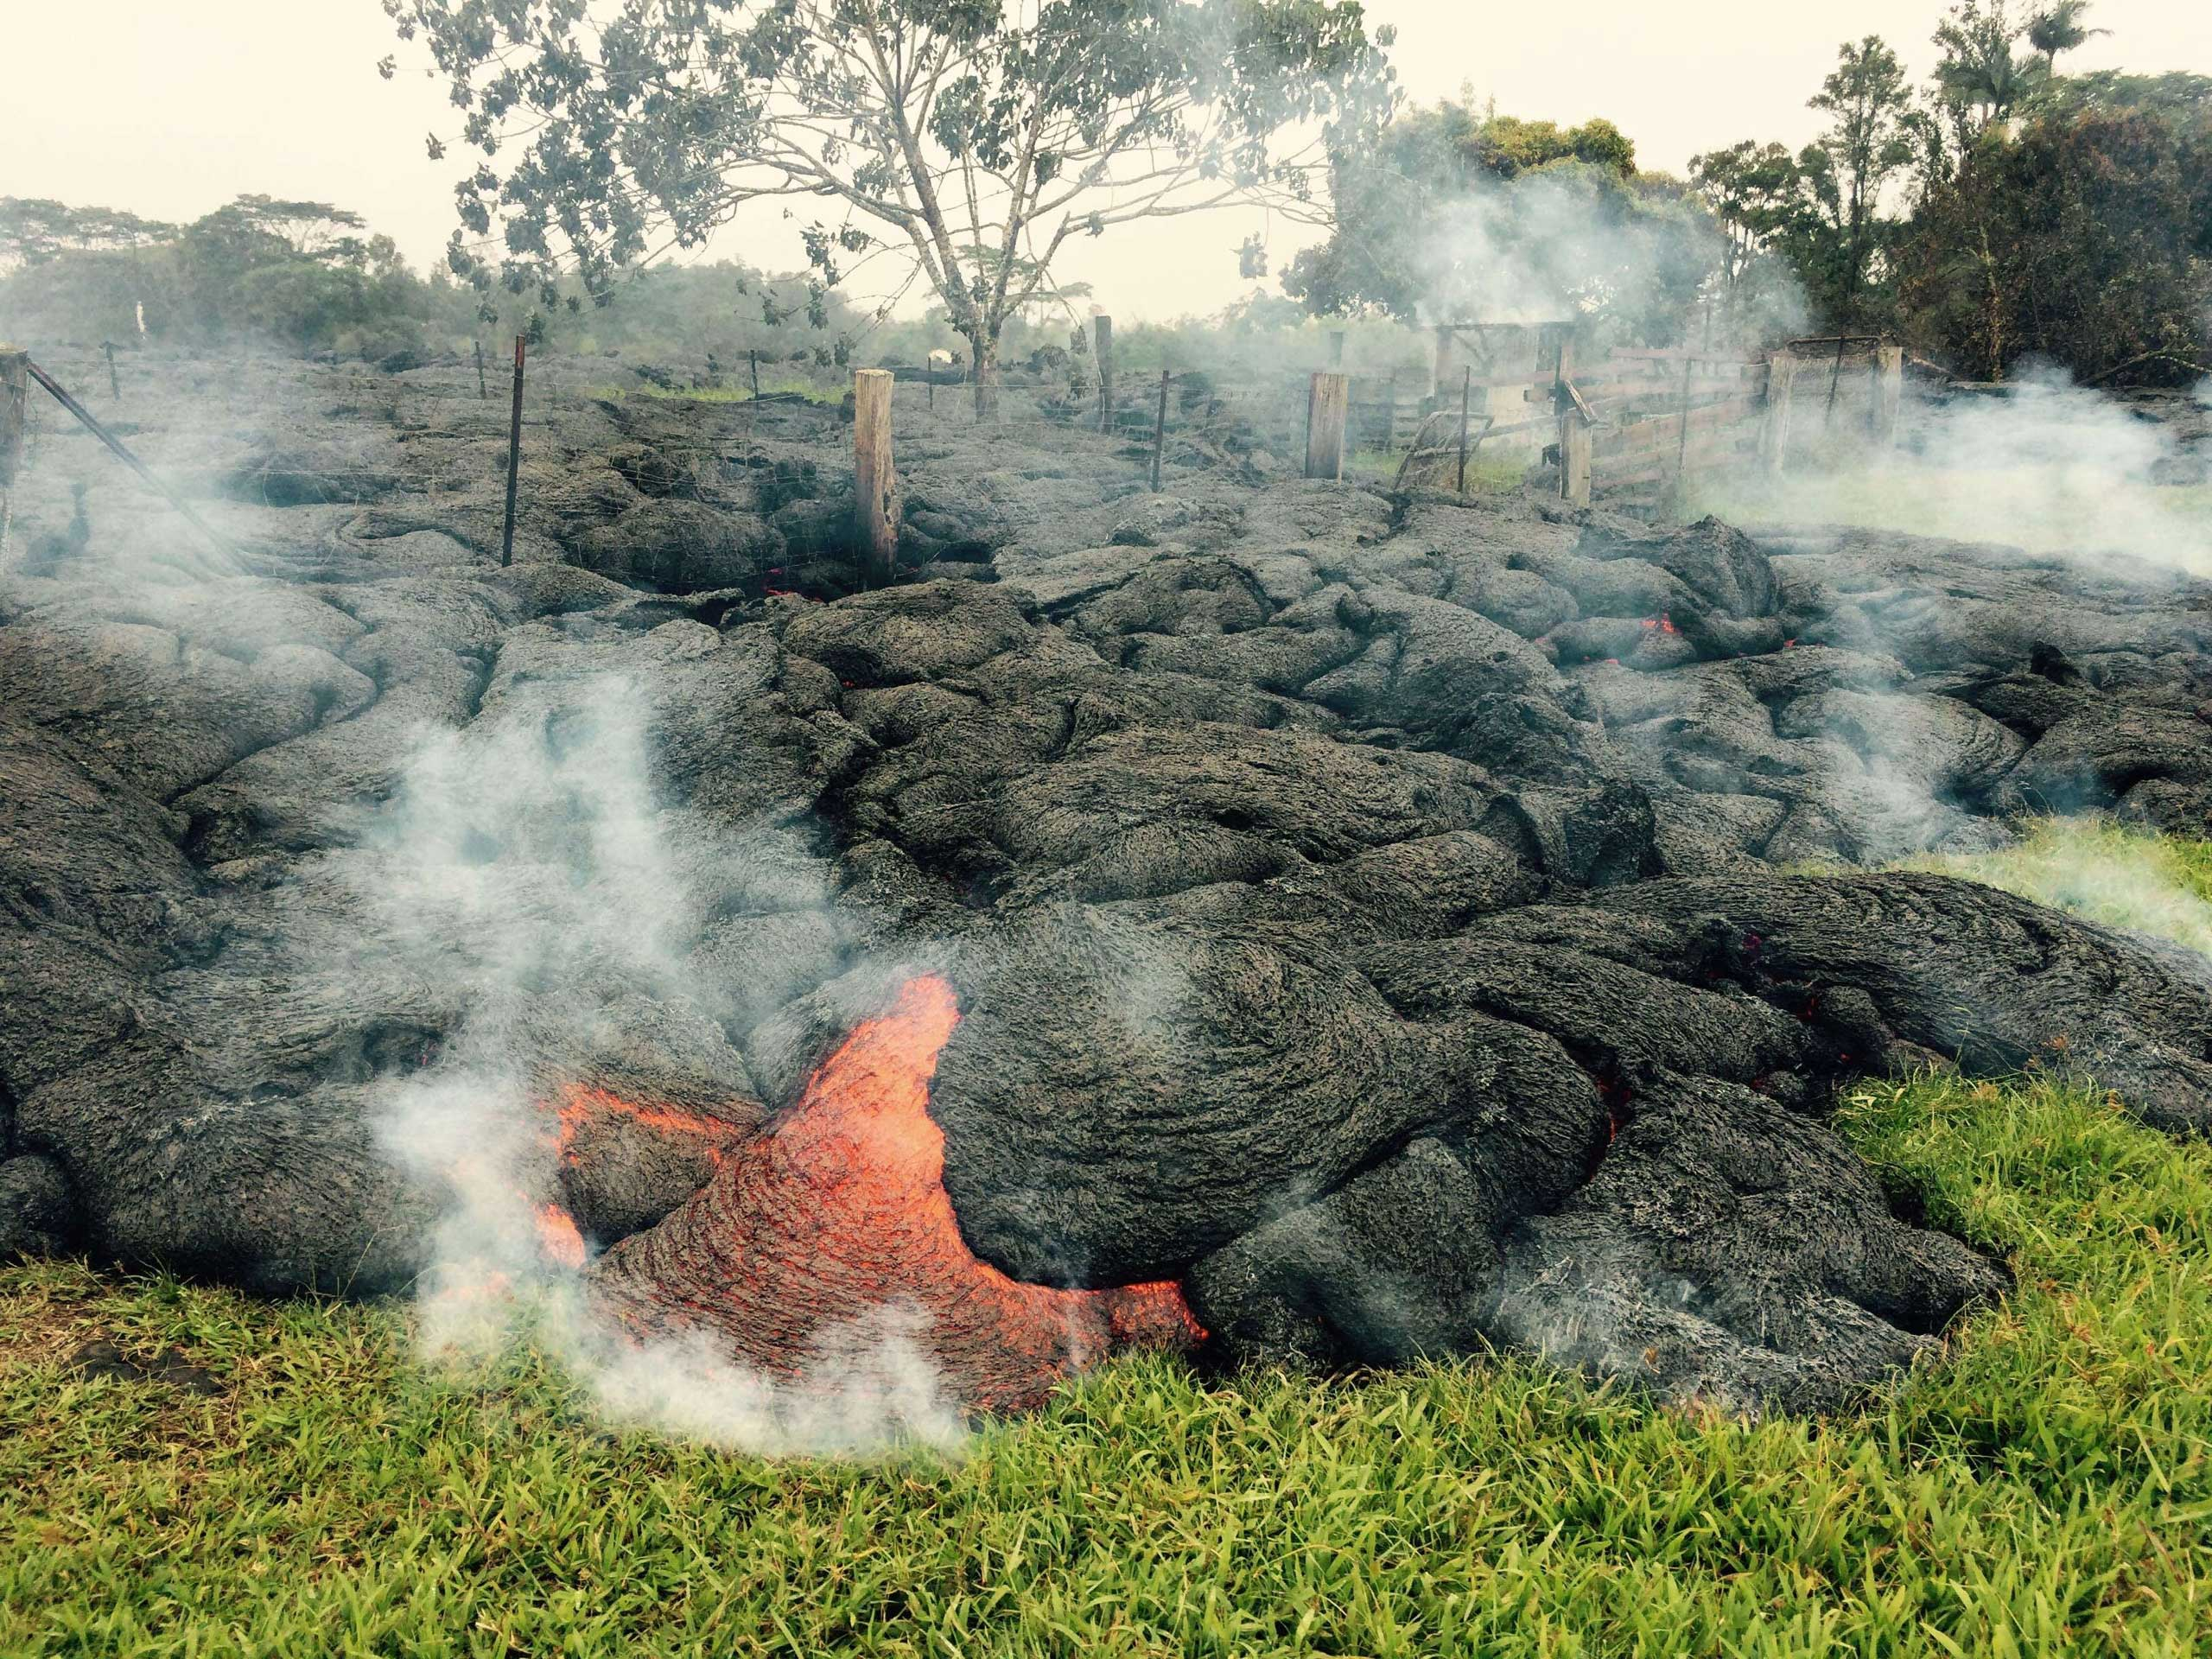 The lava flow from the Kilauea Volcano burns vegetation as it approaches a property boundary near the village of Pahoa, Hawaii on Oct. 26, 2014.